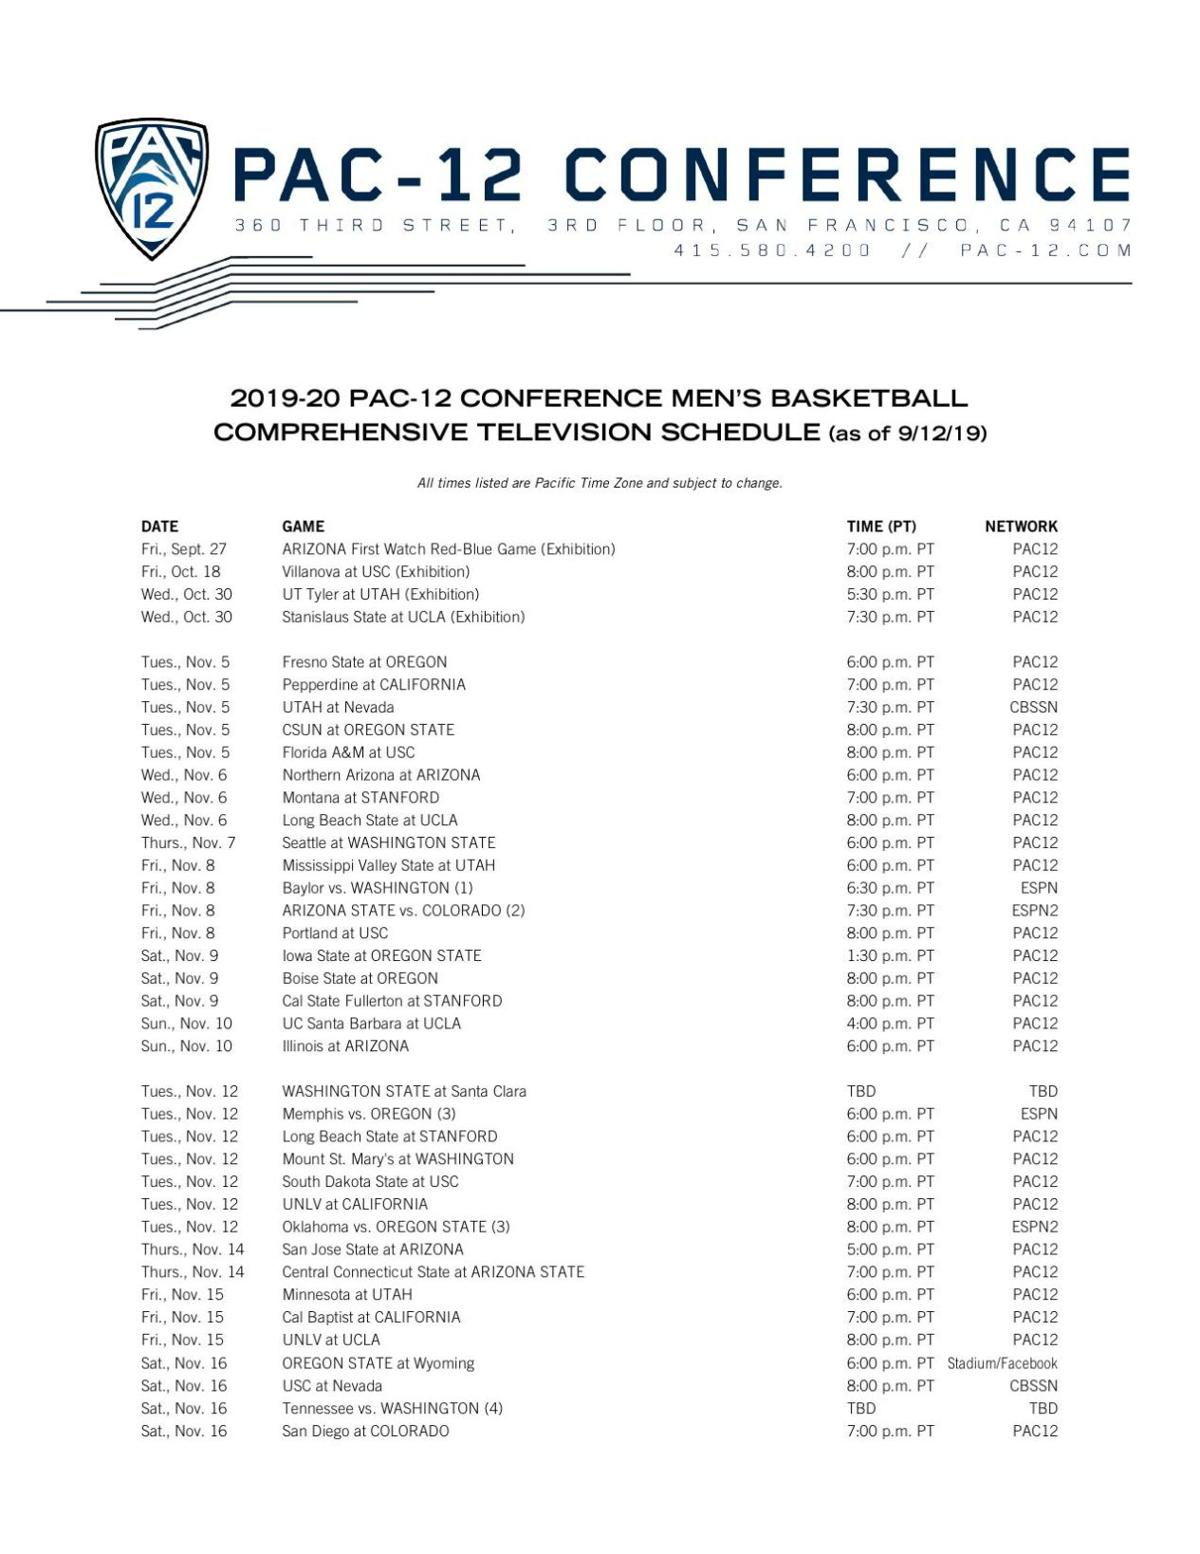 Complete 2019-20 Pac-12 basketball schedule